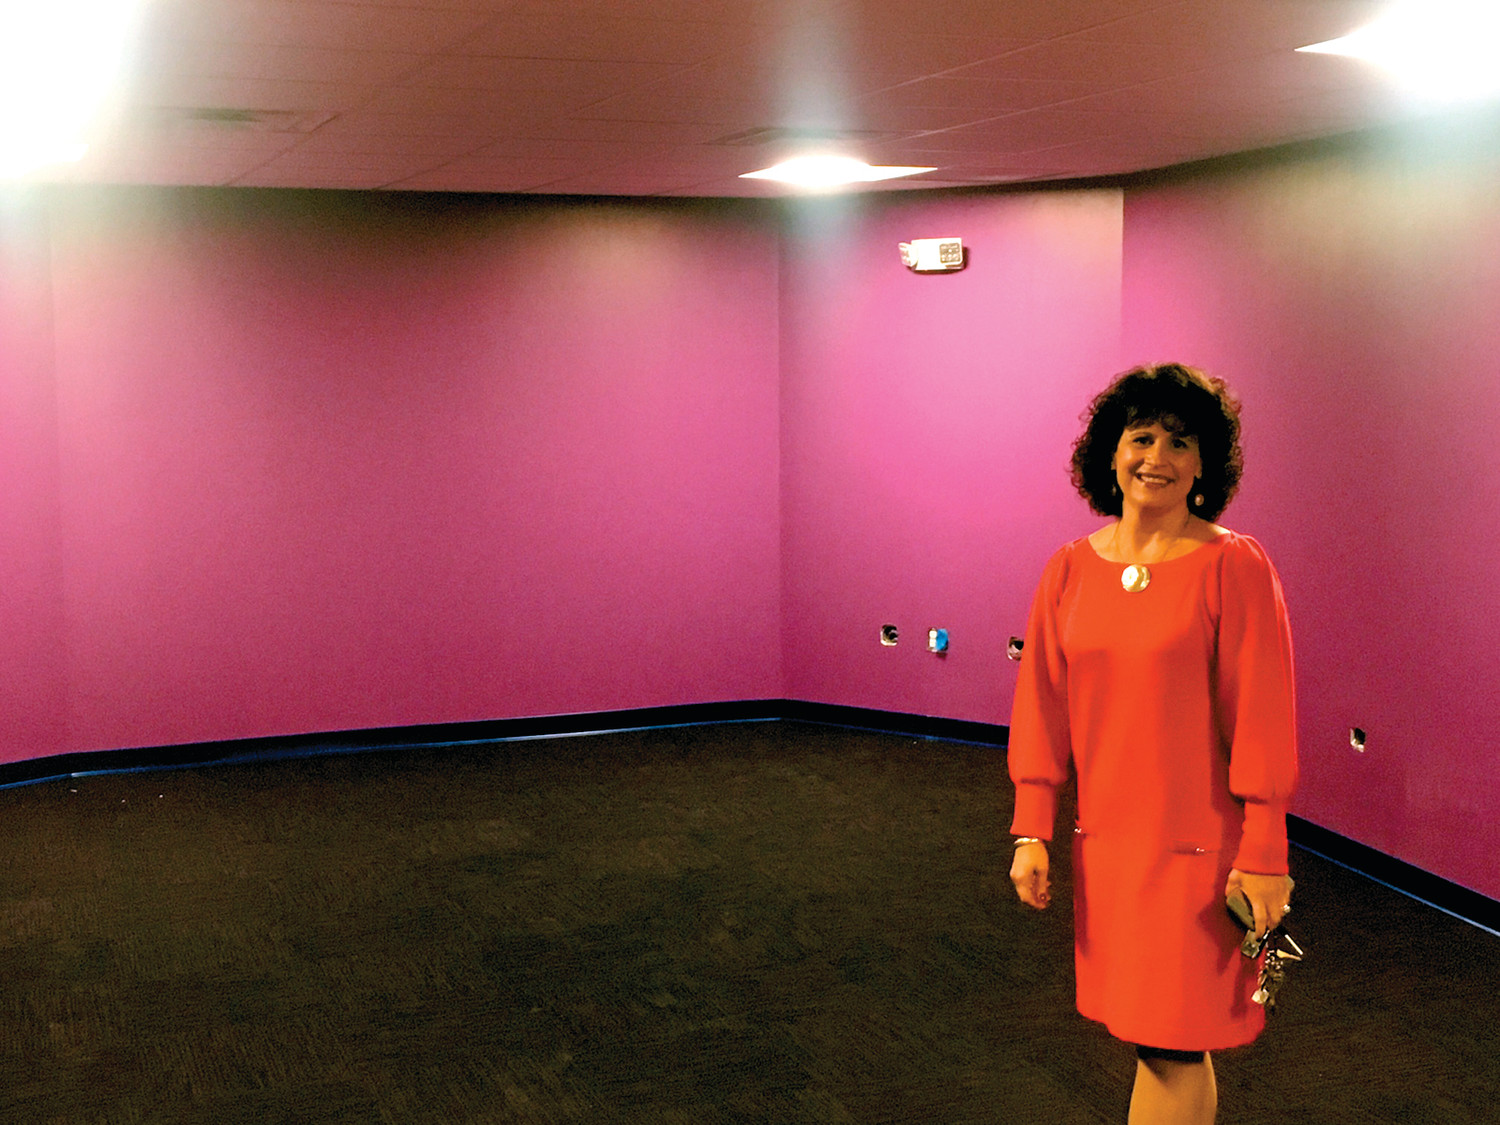 HAPPY COLORS: Boys & Girls Club of Warwick executive director Lara D'Antuono stands in the room that was once a shooting range for the Army Reserve, and will soon be home to a different kind of music – a full band in fact. The purple room will be the new home for a full, soundproof recording studio.